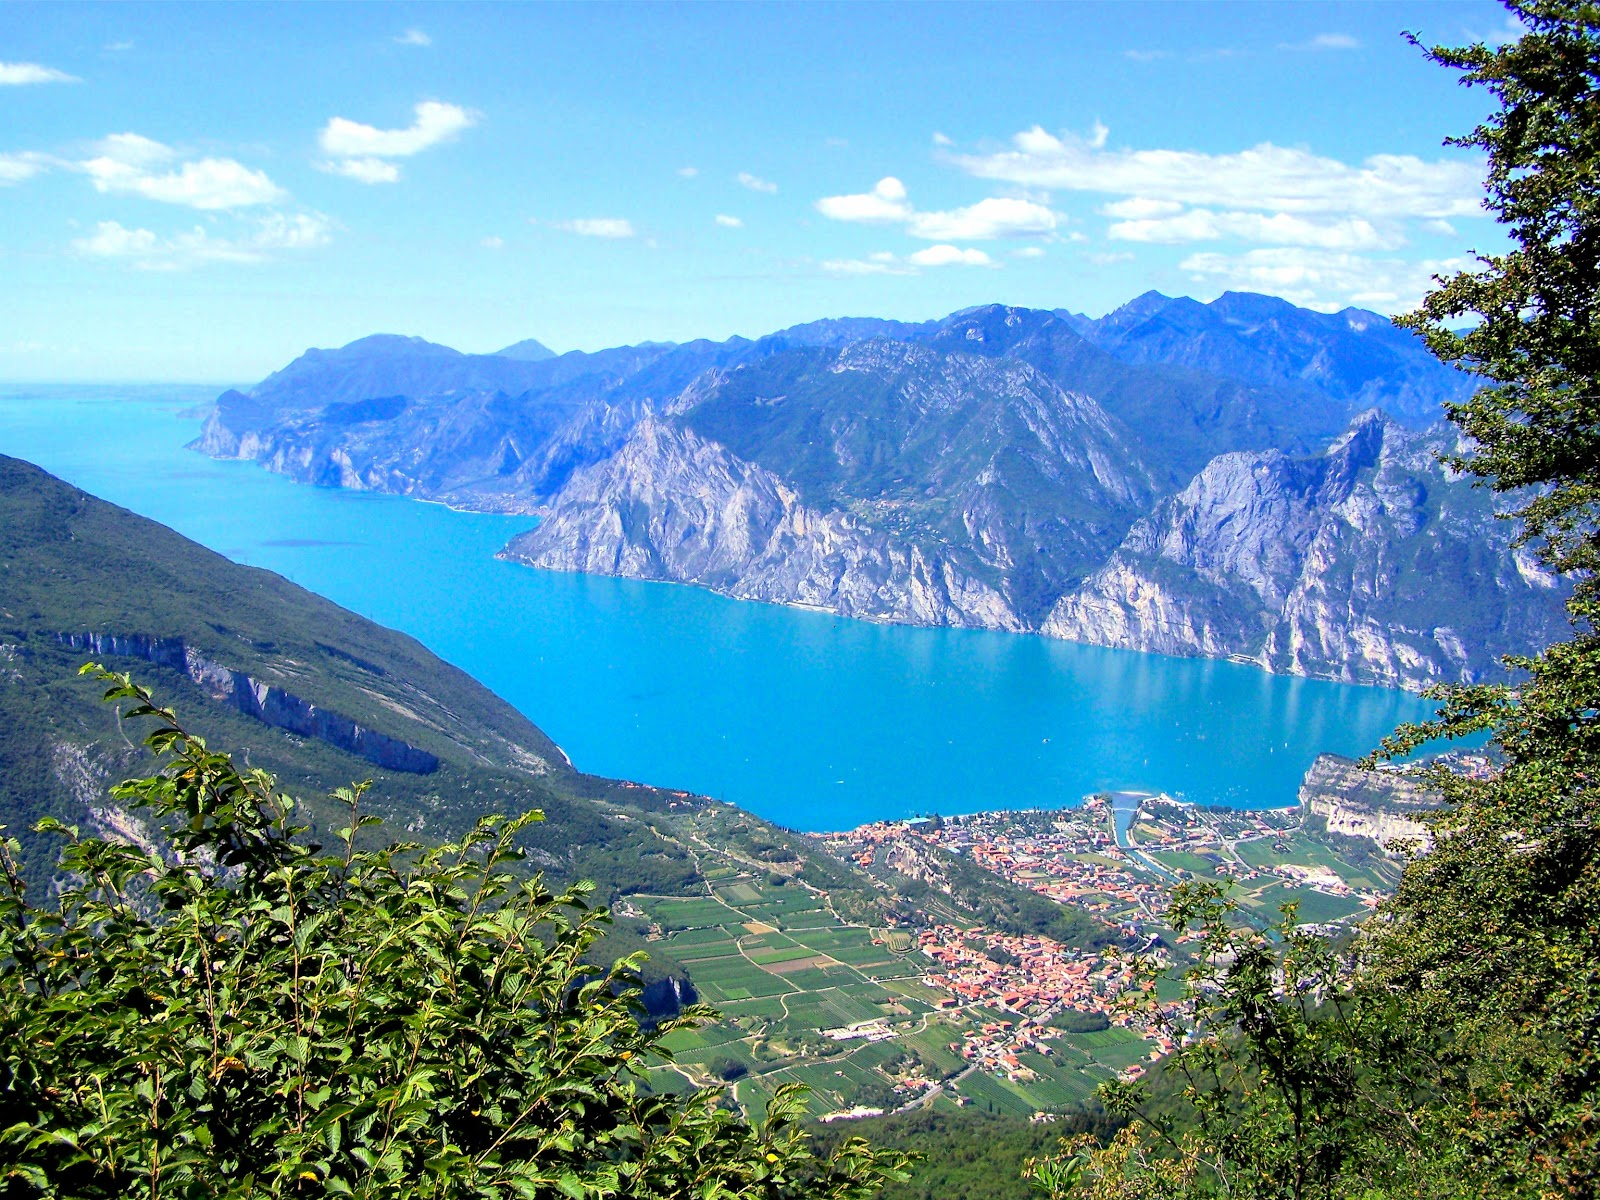 Bella Lago di Garda in northern Italy is a must see for all travelers!